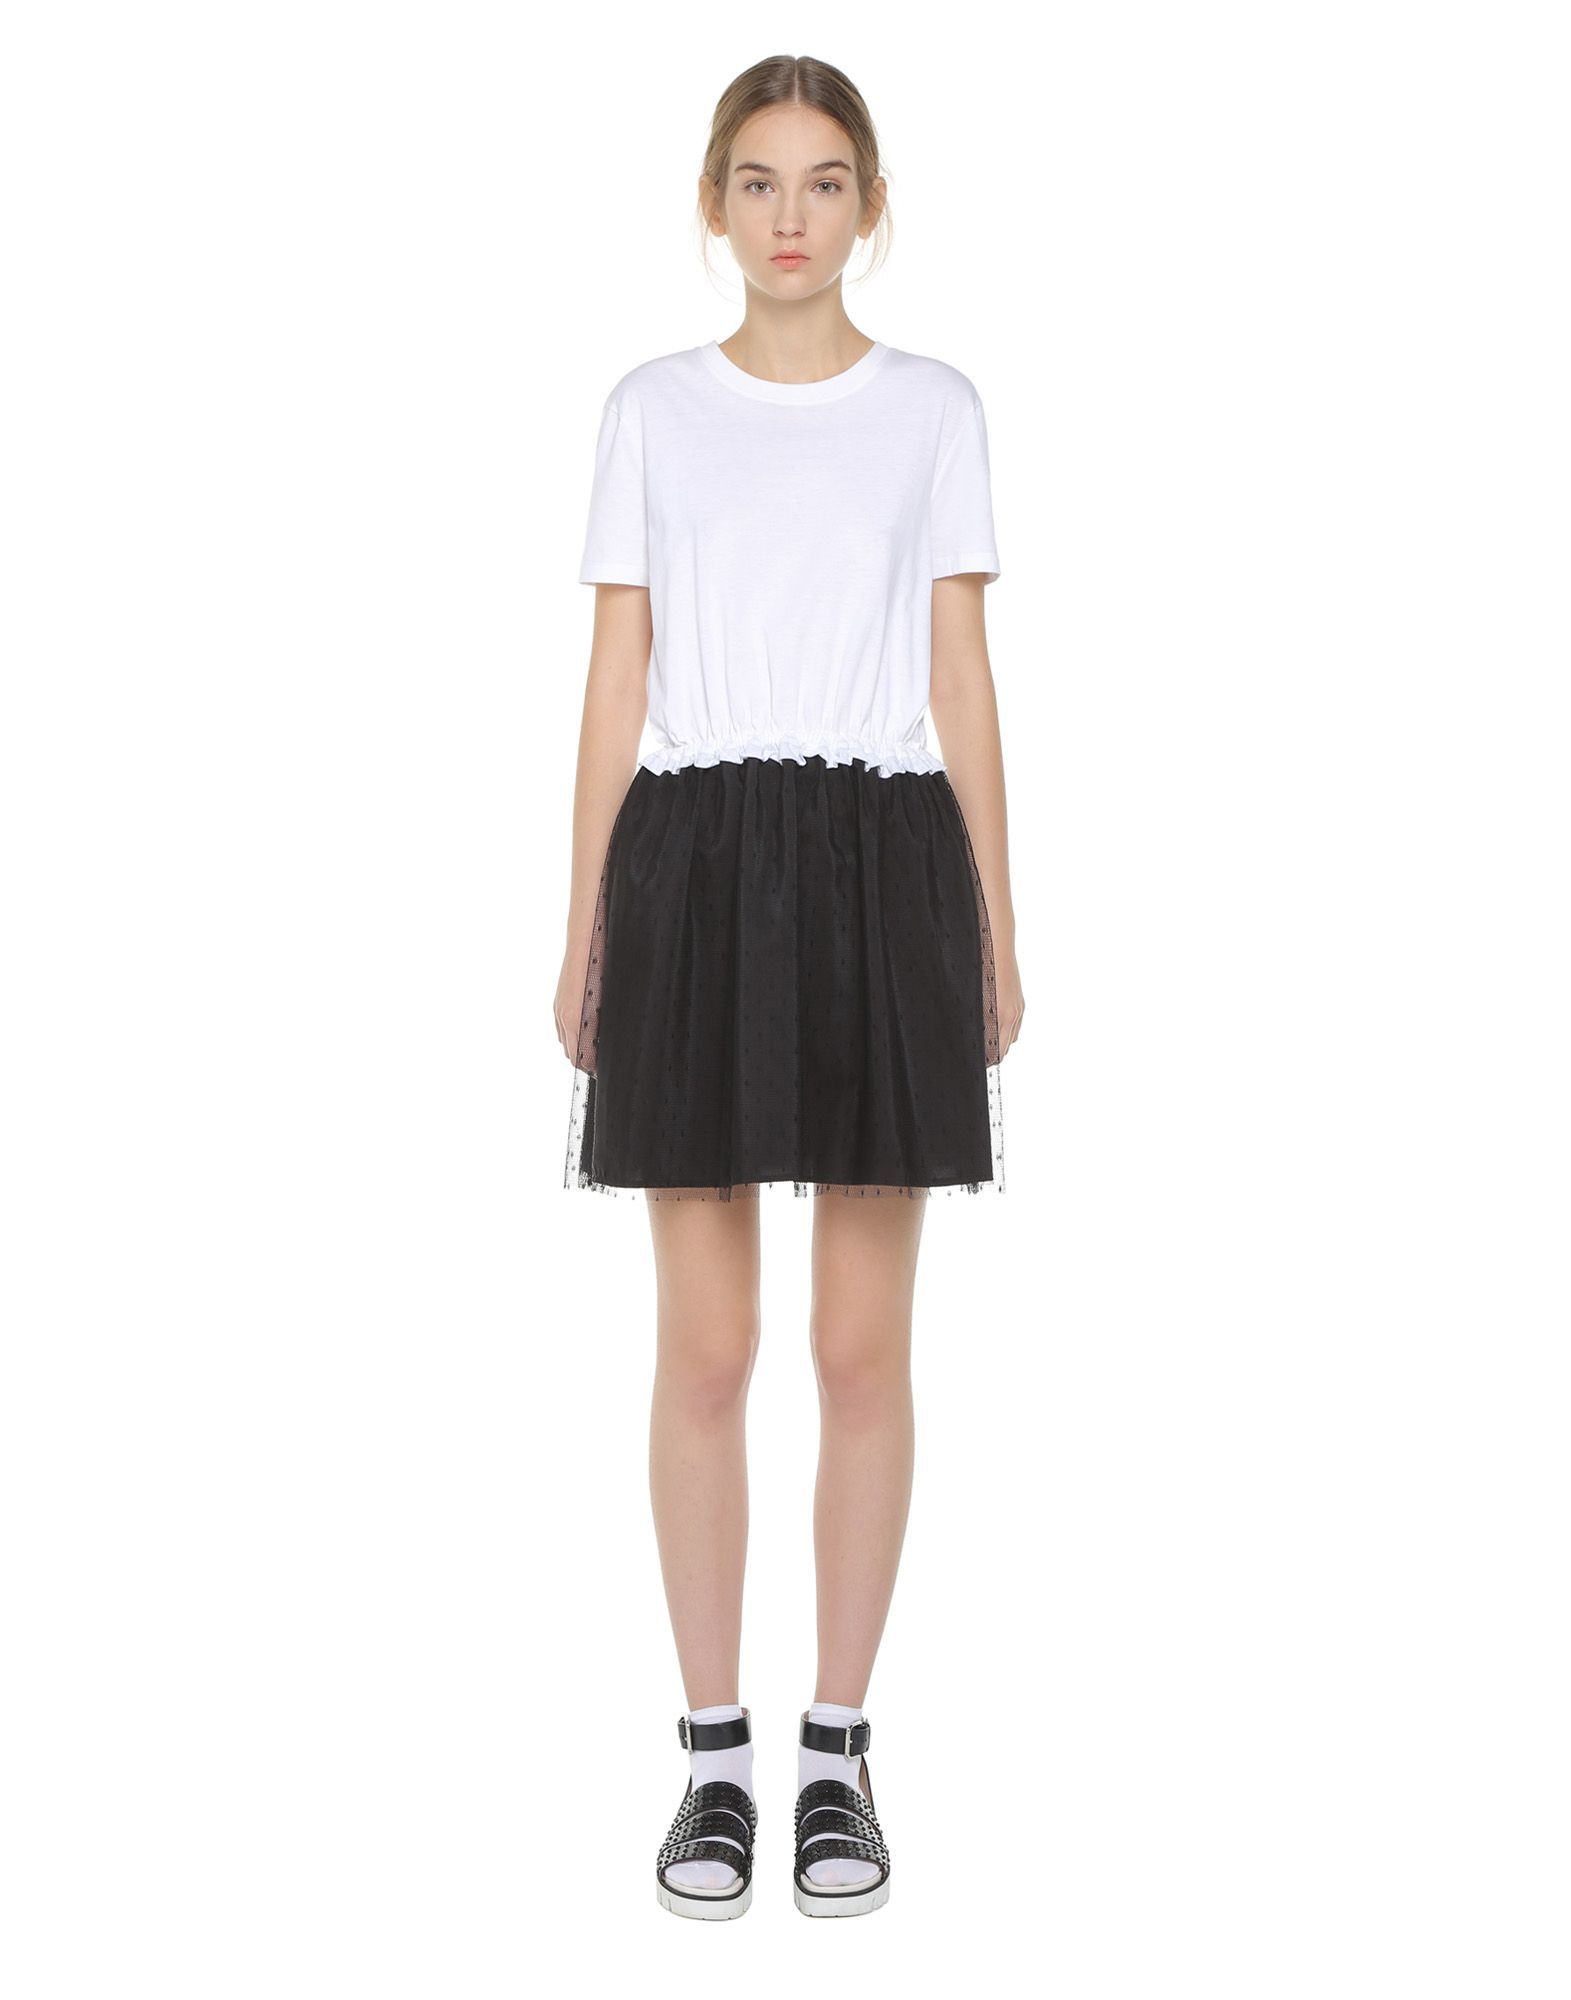 f3255ffebf26 REDValentino Jersey T Shirt Dress With Point D'esprit Tulle - Jersey Dress  for Women | REDValentino E-Store